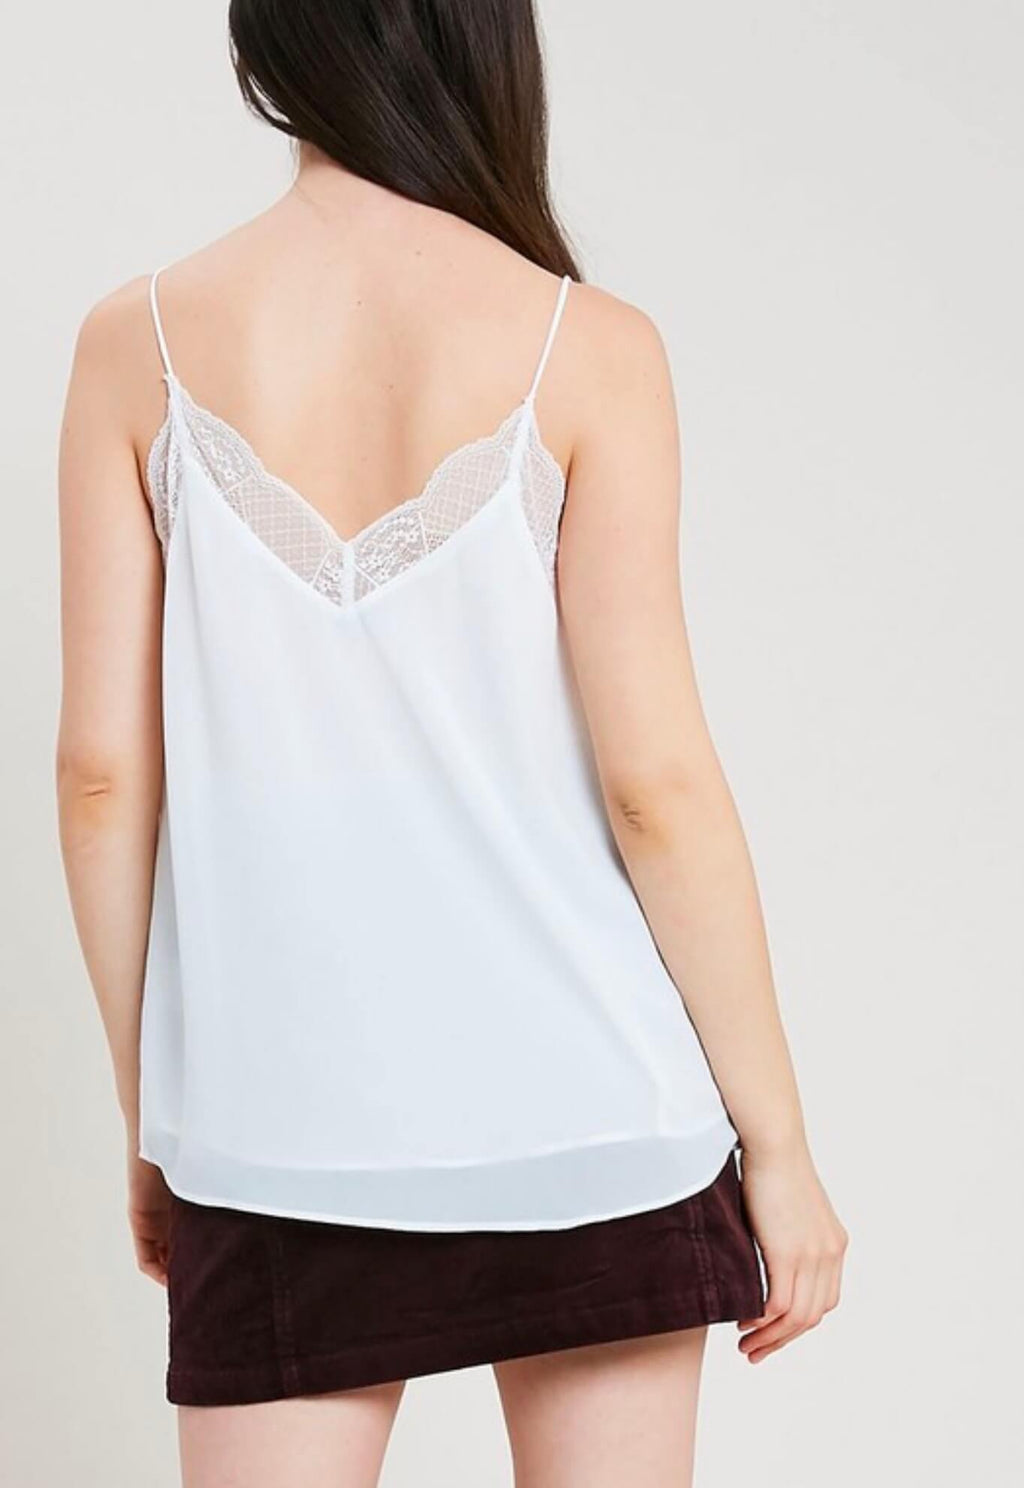 V-Neck Sleeveless Lace Trimmed Camisole Top in Ivory